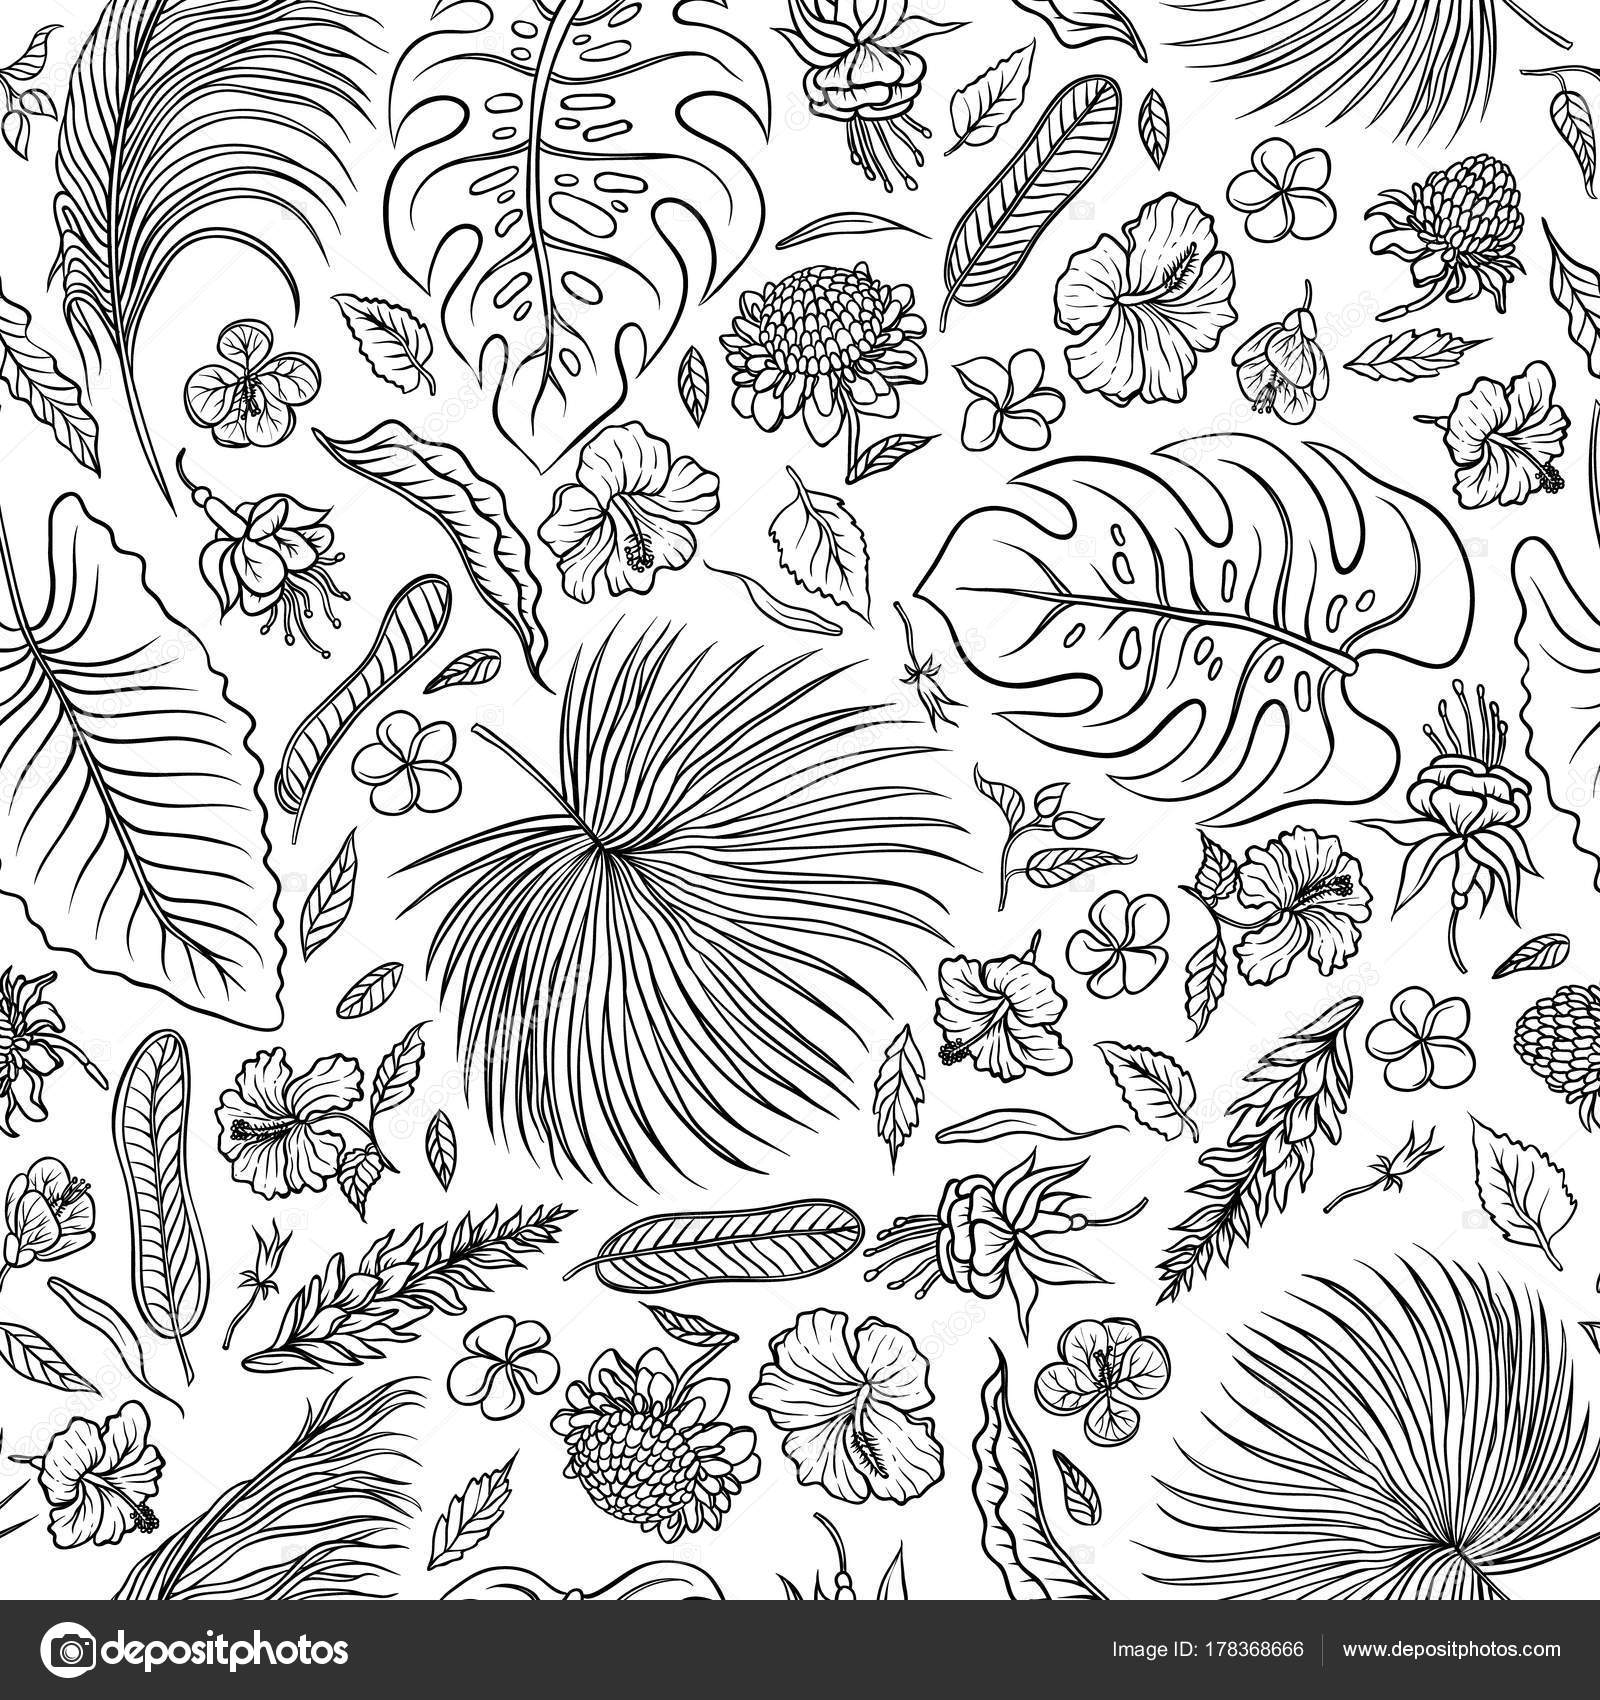 Vector sketch black and white set seamless pattern the leaves of tropical plants and exotic